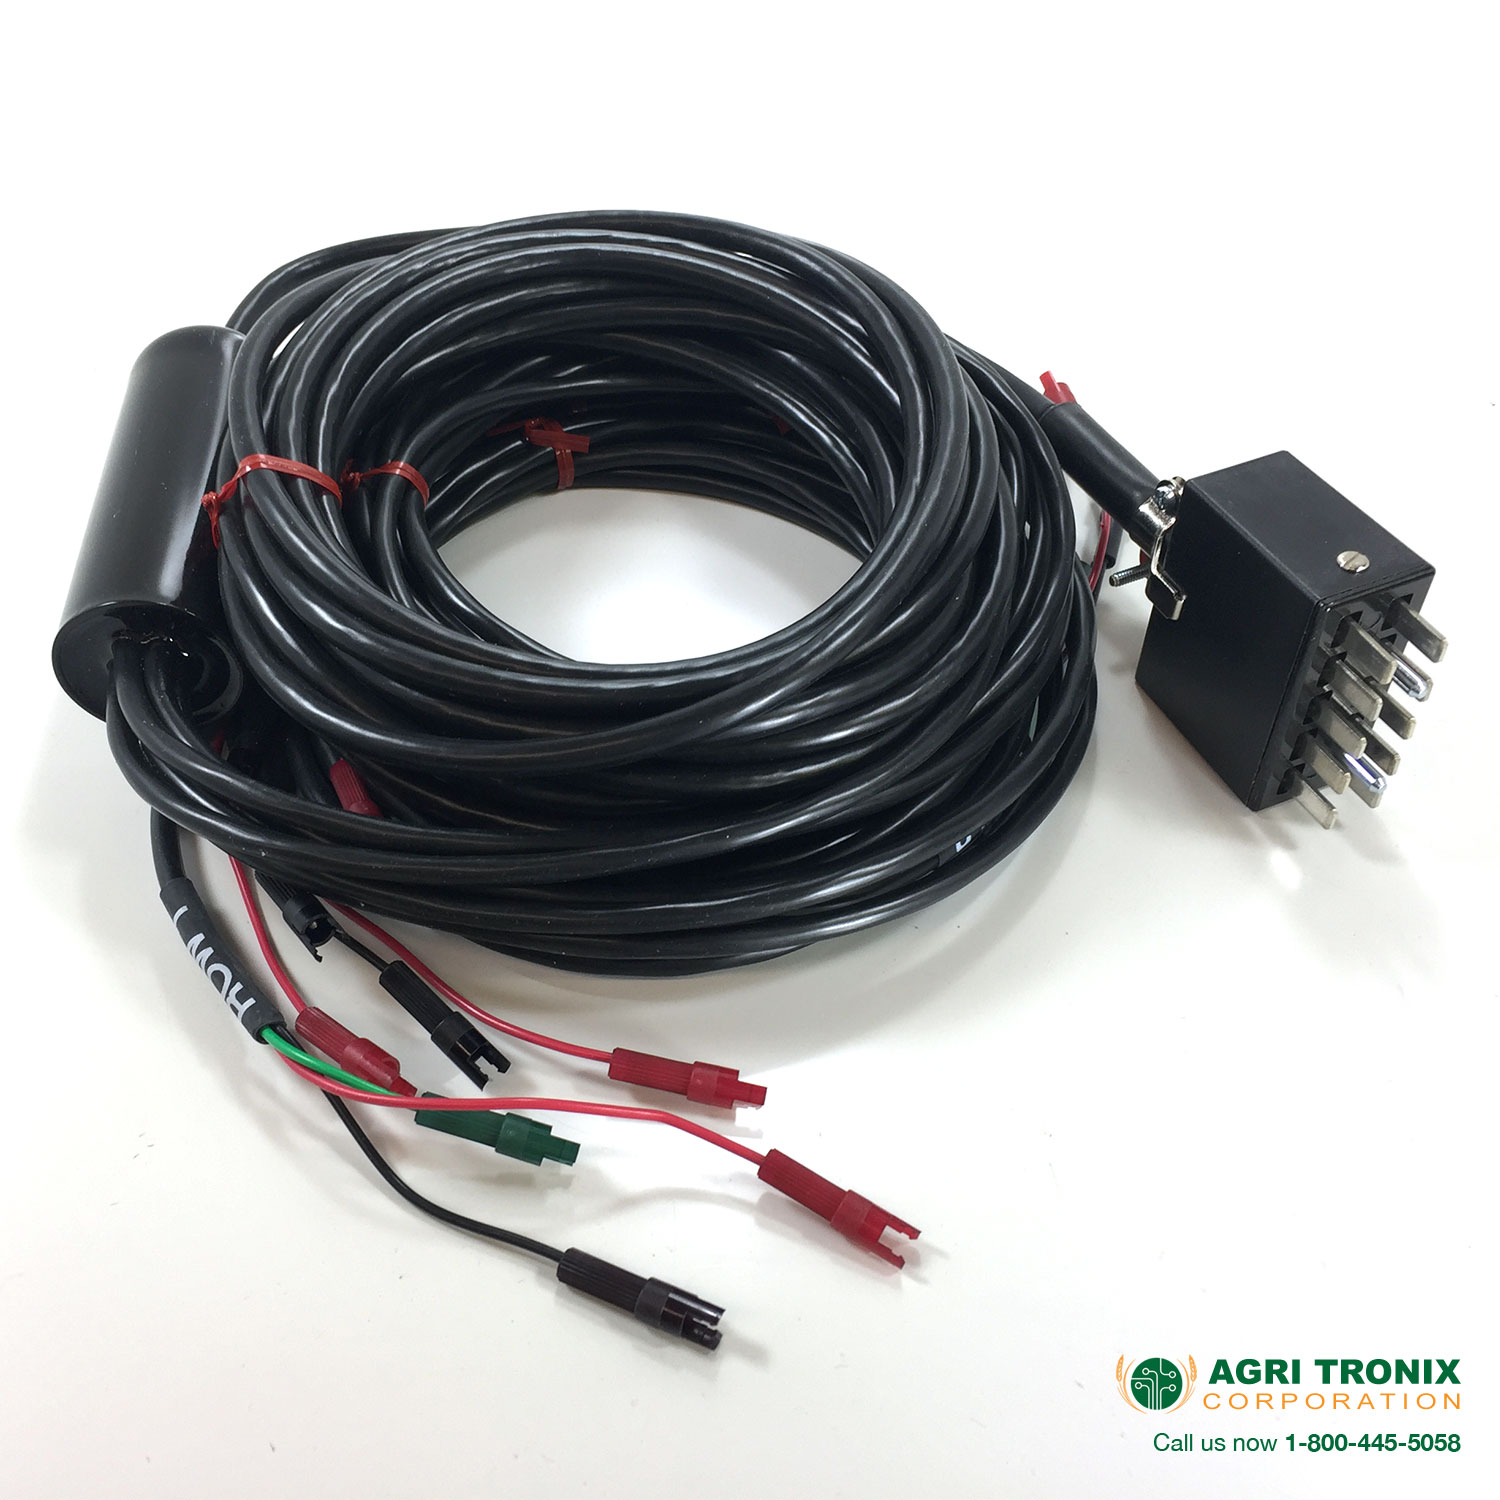 4 Row Harness, 10-pin Jones with 3 wire amp seed sensor connectors  Wire Harness Connector on 3 wire wiring harness, 3 wire power connector, 3 pin connector, 3 hose connector, screw terminal connector, 3 terminal connector, 6 pin wire connector,